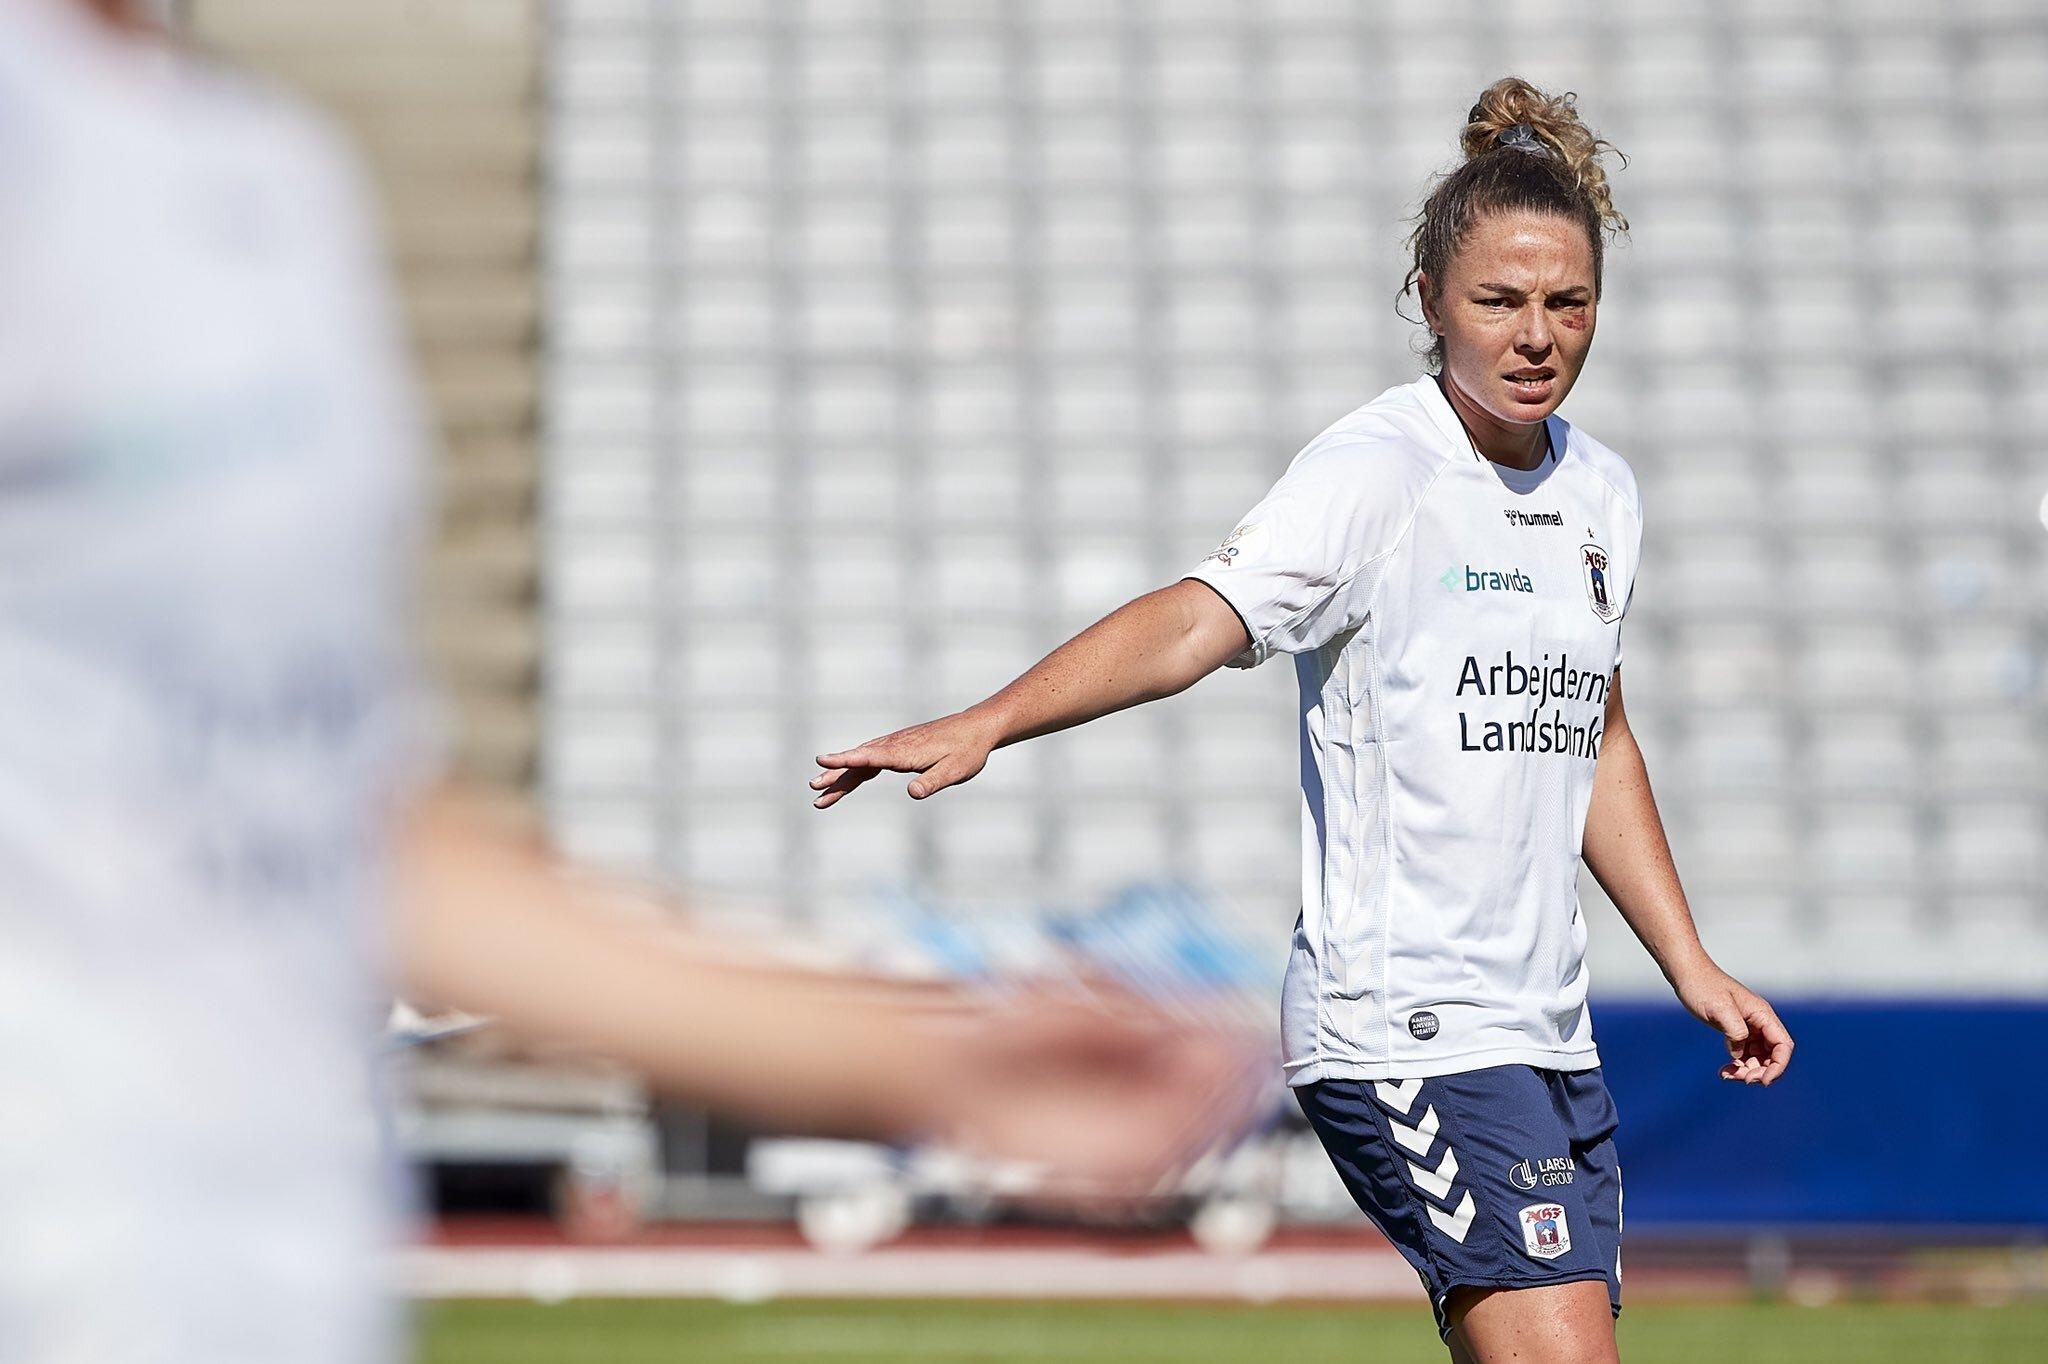 Jenna McCormick for AGF Fodbold (Source: @AGFFodbold Twitter)